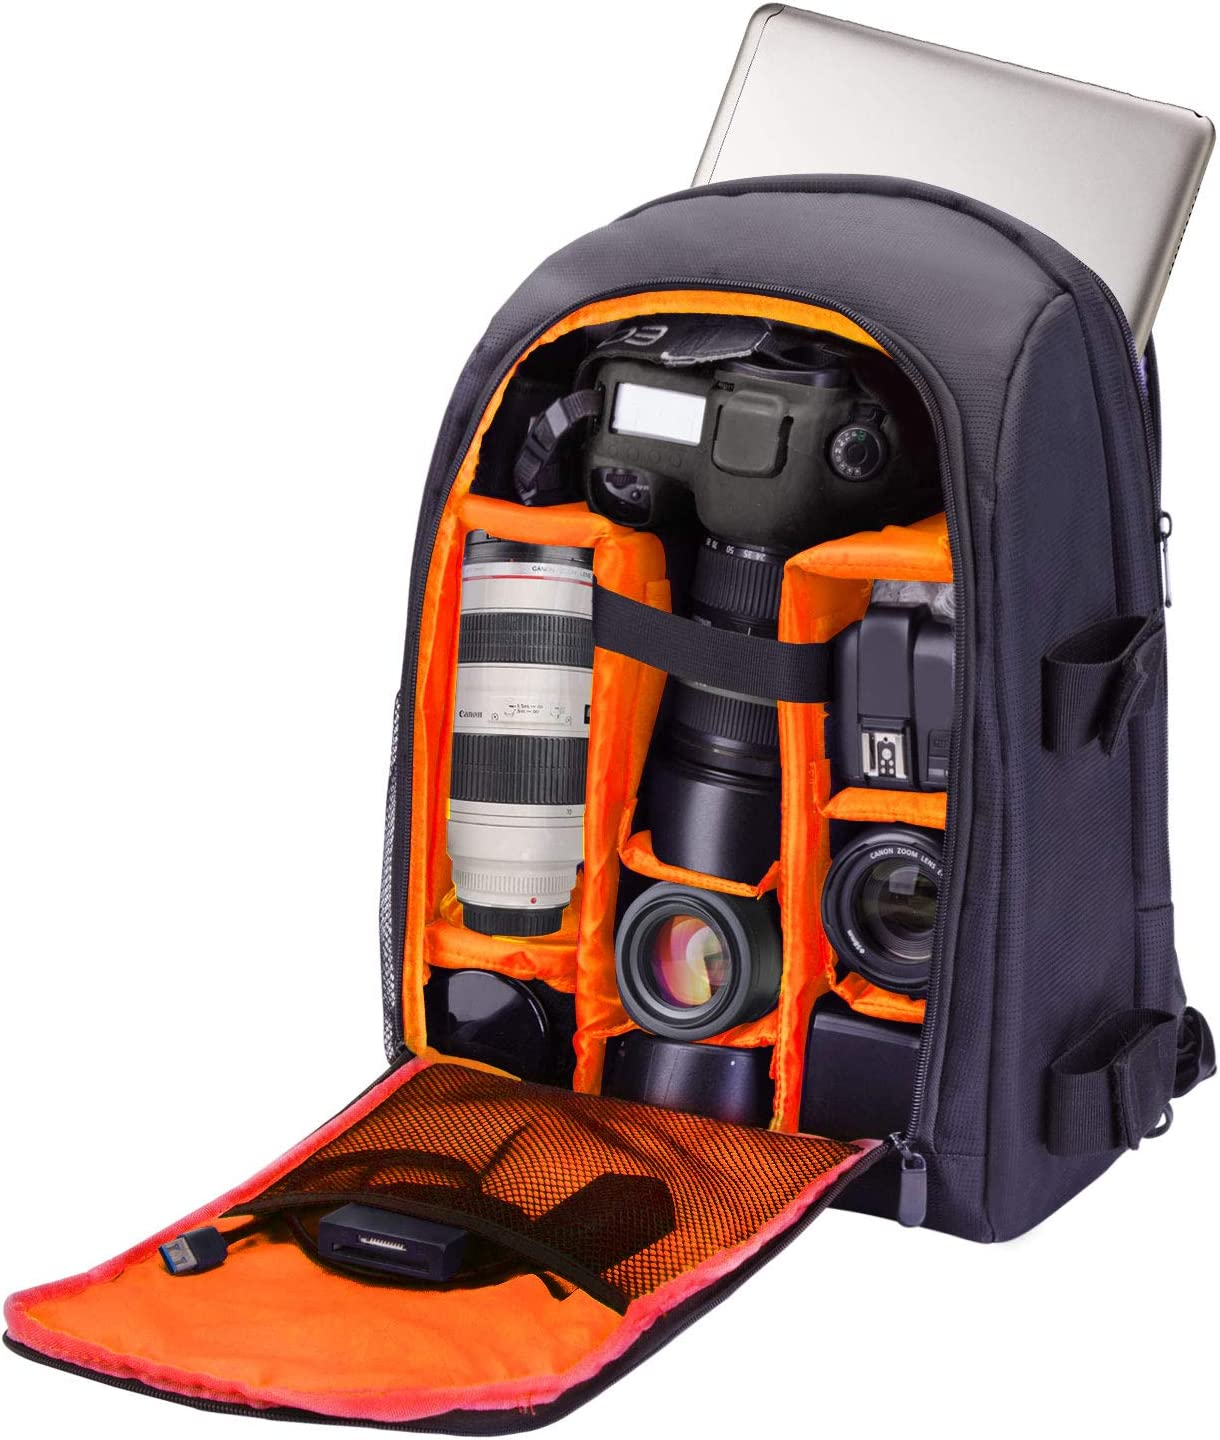 Camera Backpack Waterproof by G-raphy for DSLR/SLR Cameras (Canon, Nikon, Sony and etc), Laptops, Tripods, Flashes, Lenses and Accessories (Orange)